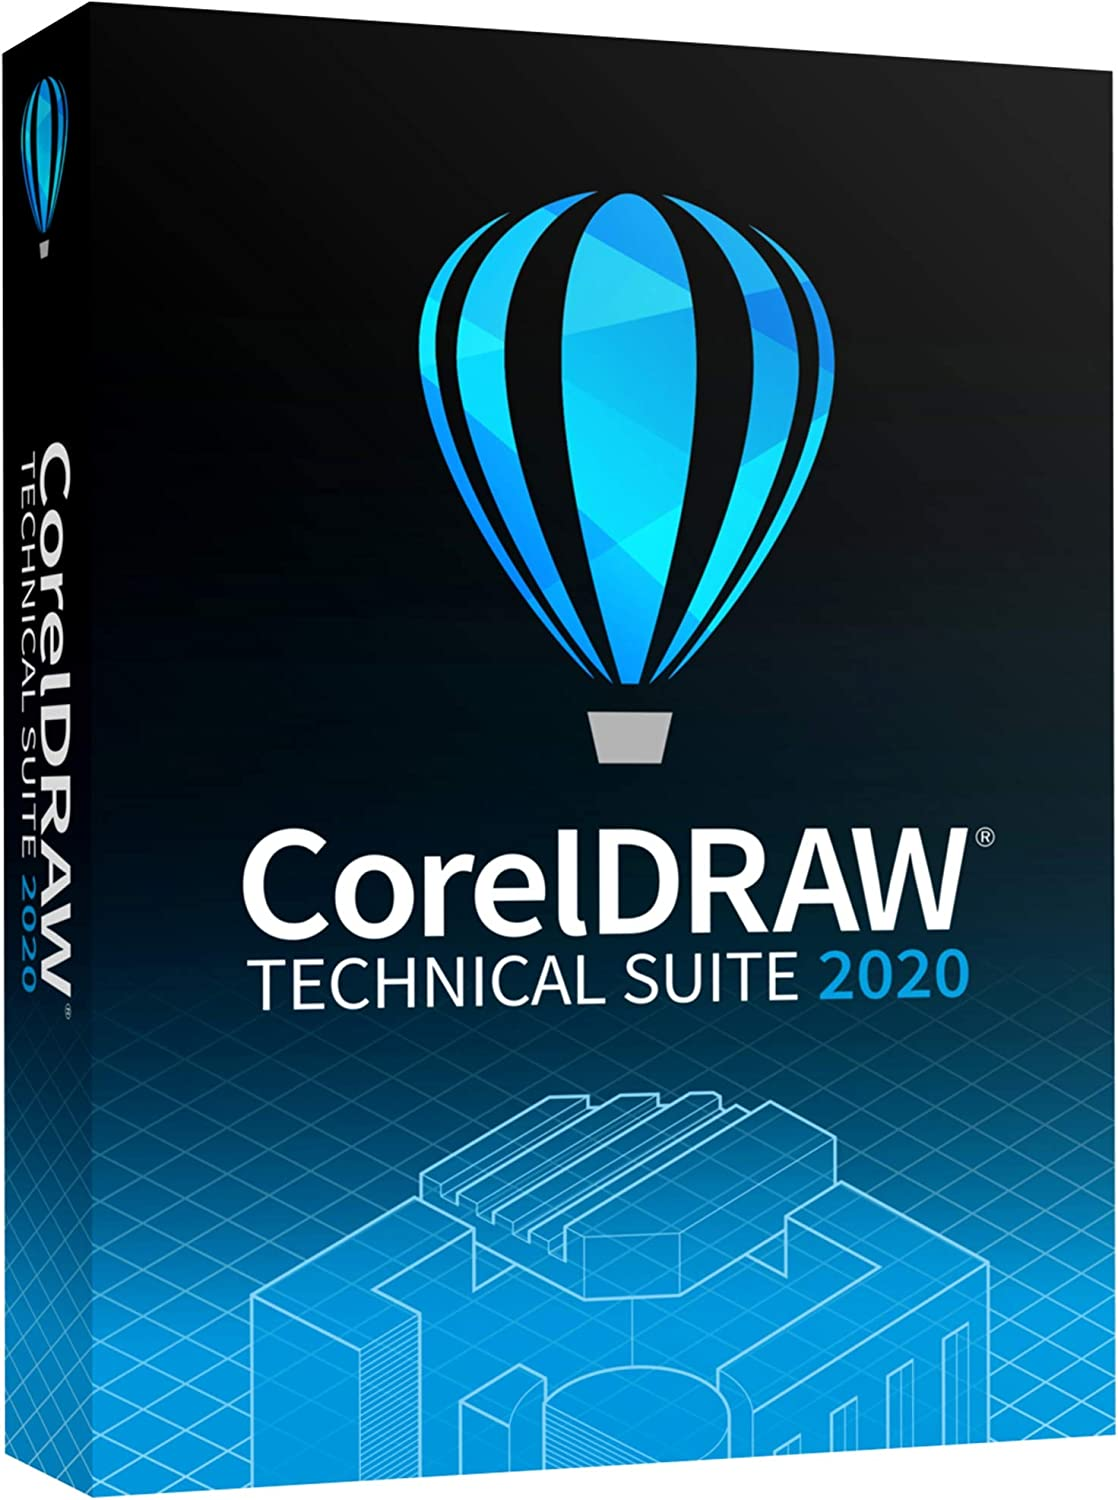 CorelDRAW Technical Suite 2020 Discount Coupon Code